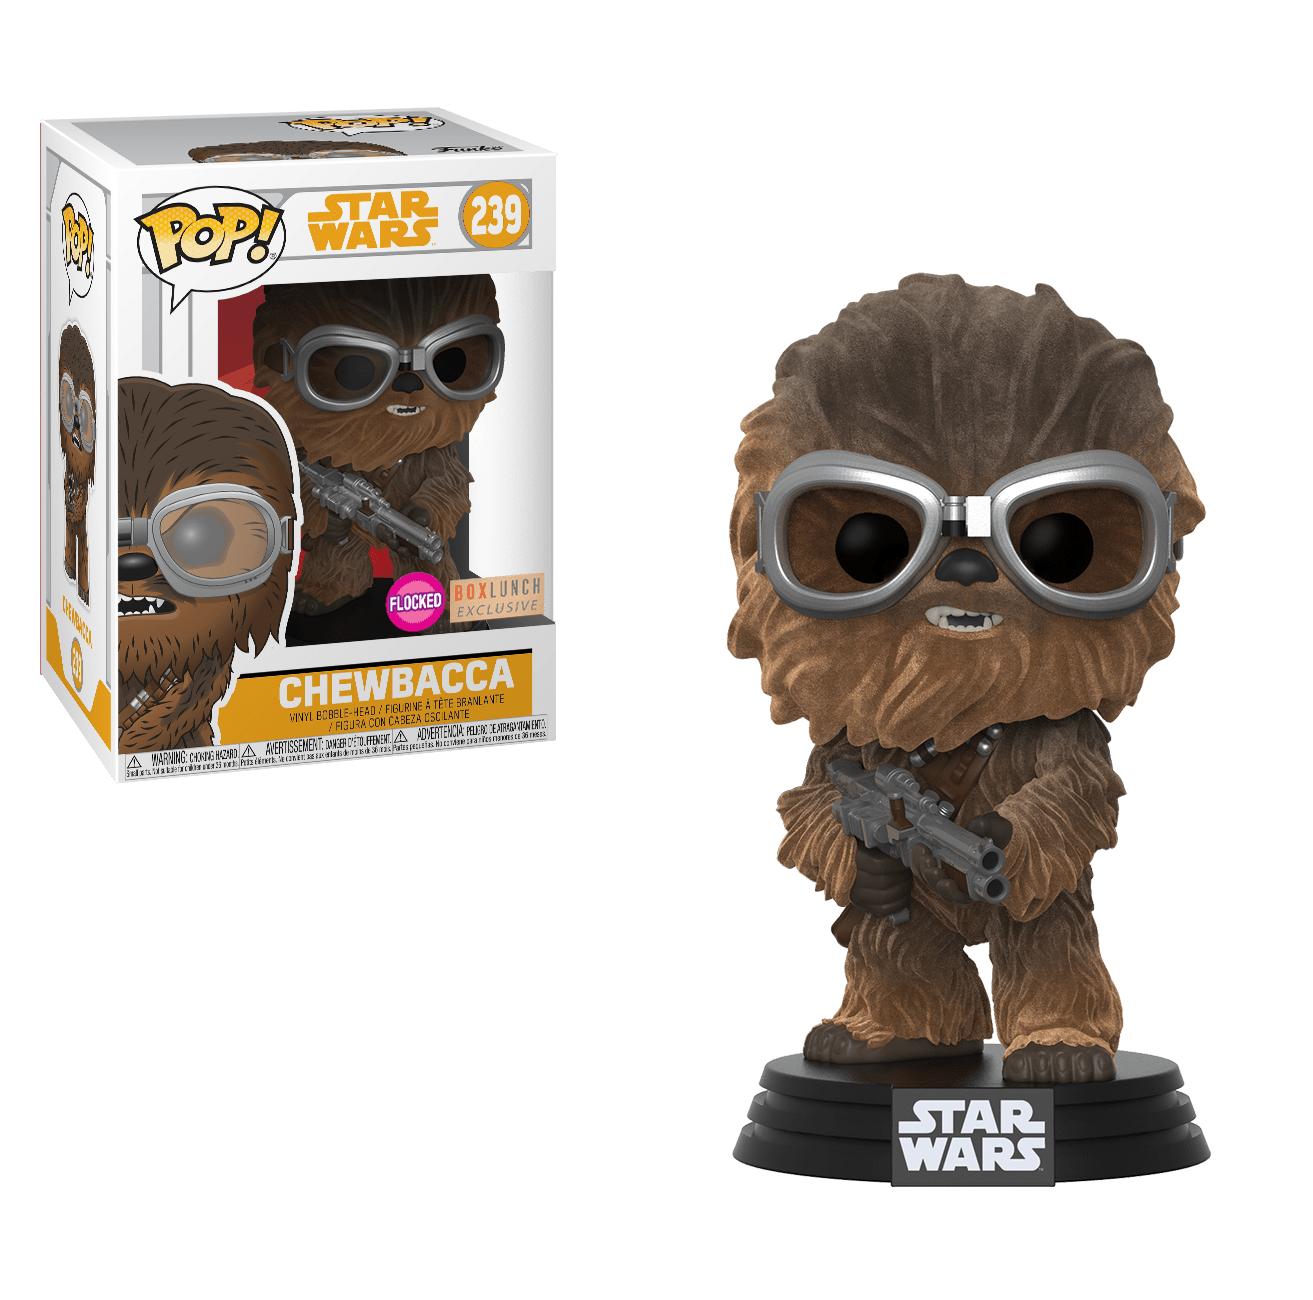 Funko Pop! Movies - Solo: A Star Wars Story #239 - Chewbacca (with Goggles) (Flocked) (Exclusive) - Simply Toys